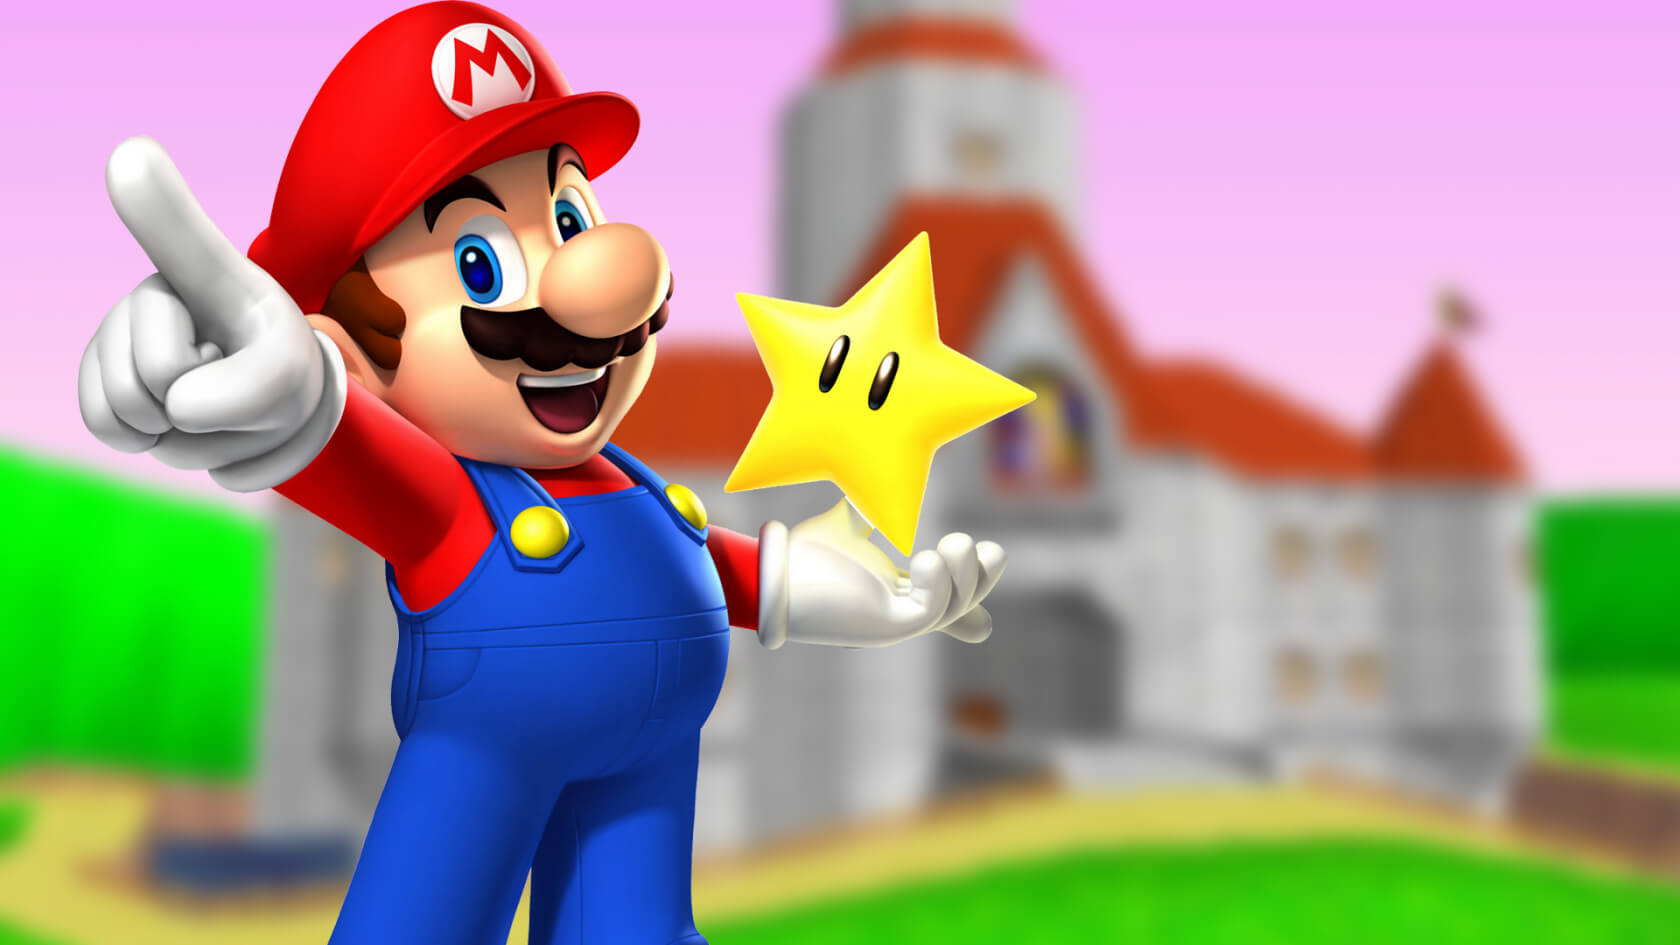 Super Mario 64 Online is a romhack that allows up to 24 people to play simultaneously